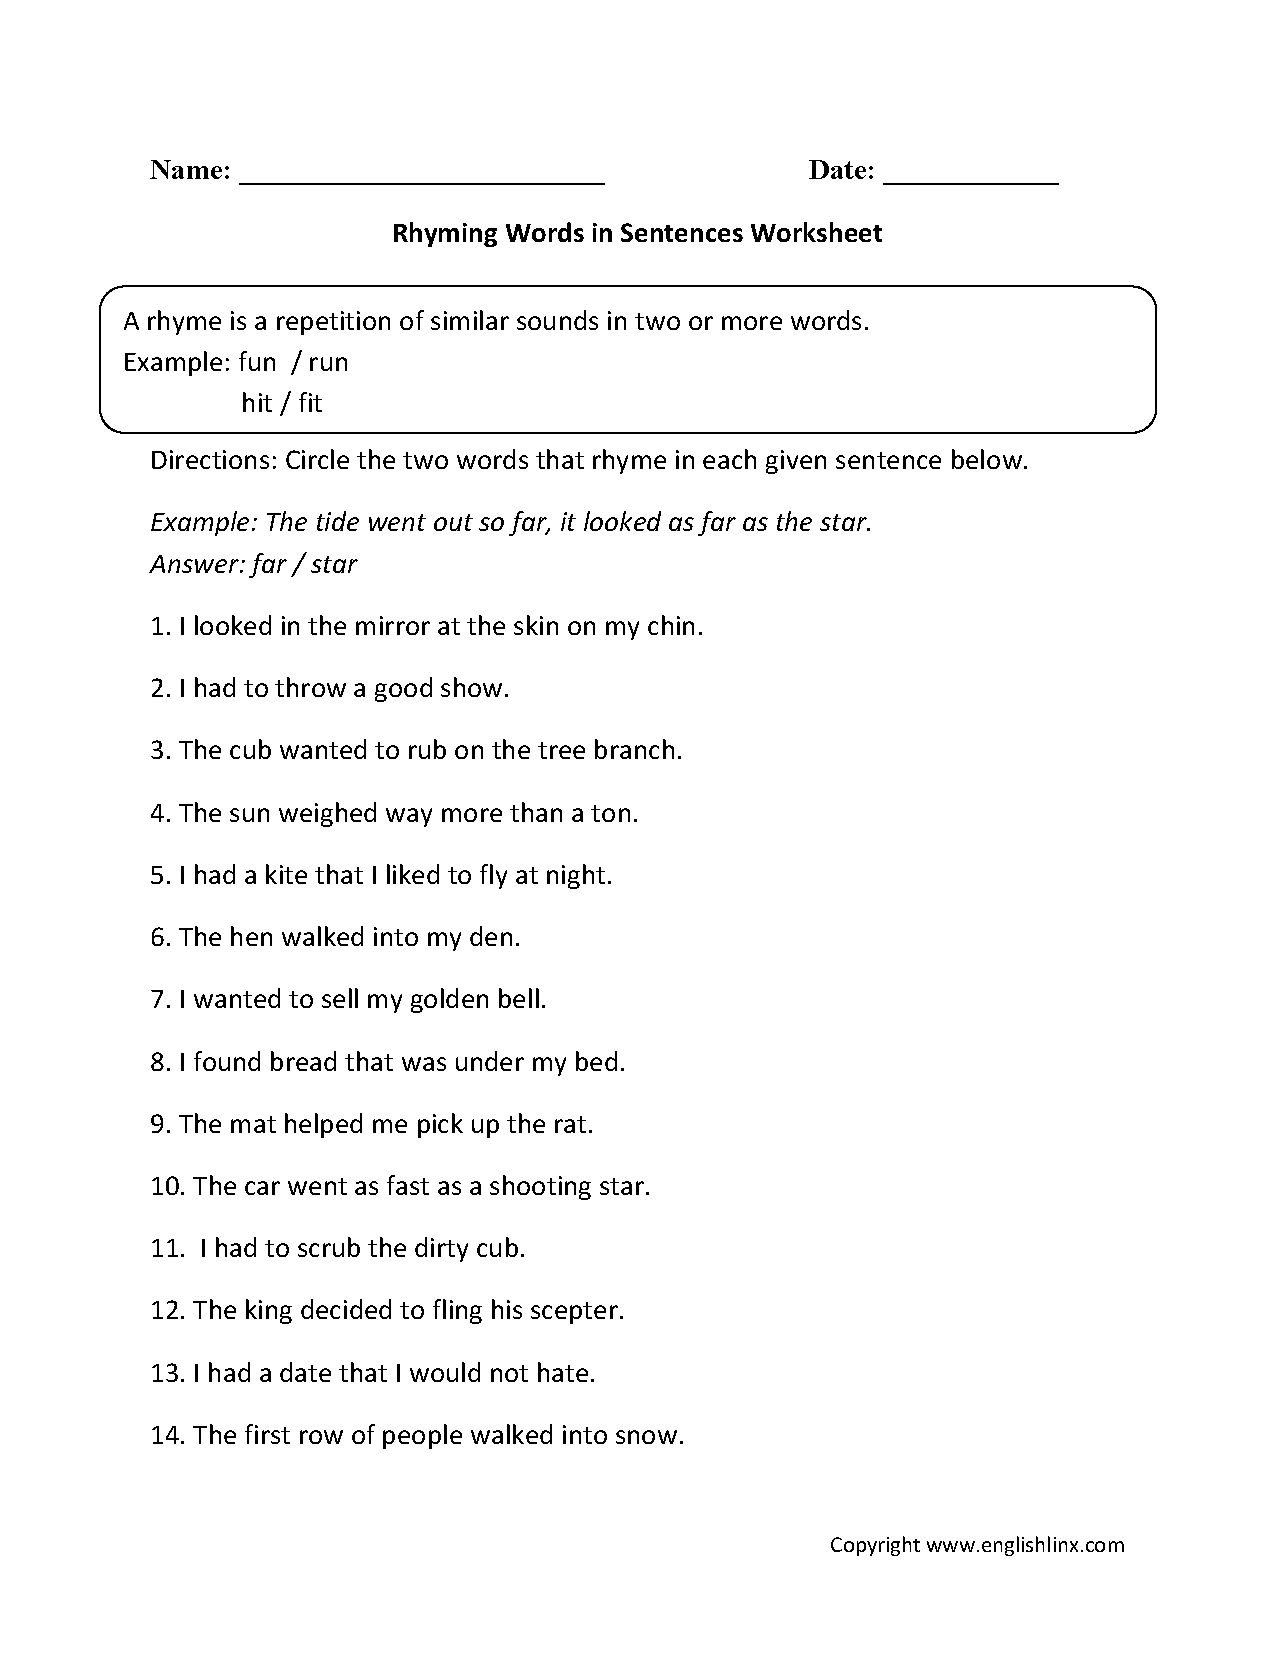 Worksheet Worksheet On Rhyming Words englishlinx com rhyming worksheets words in sentences worksheet